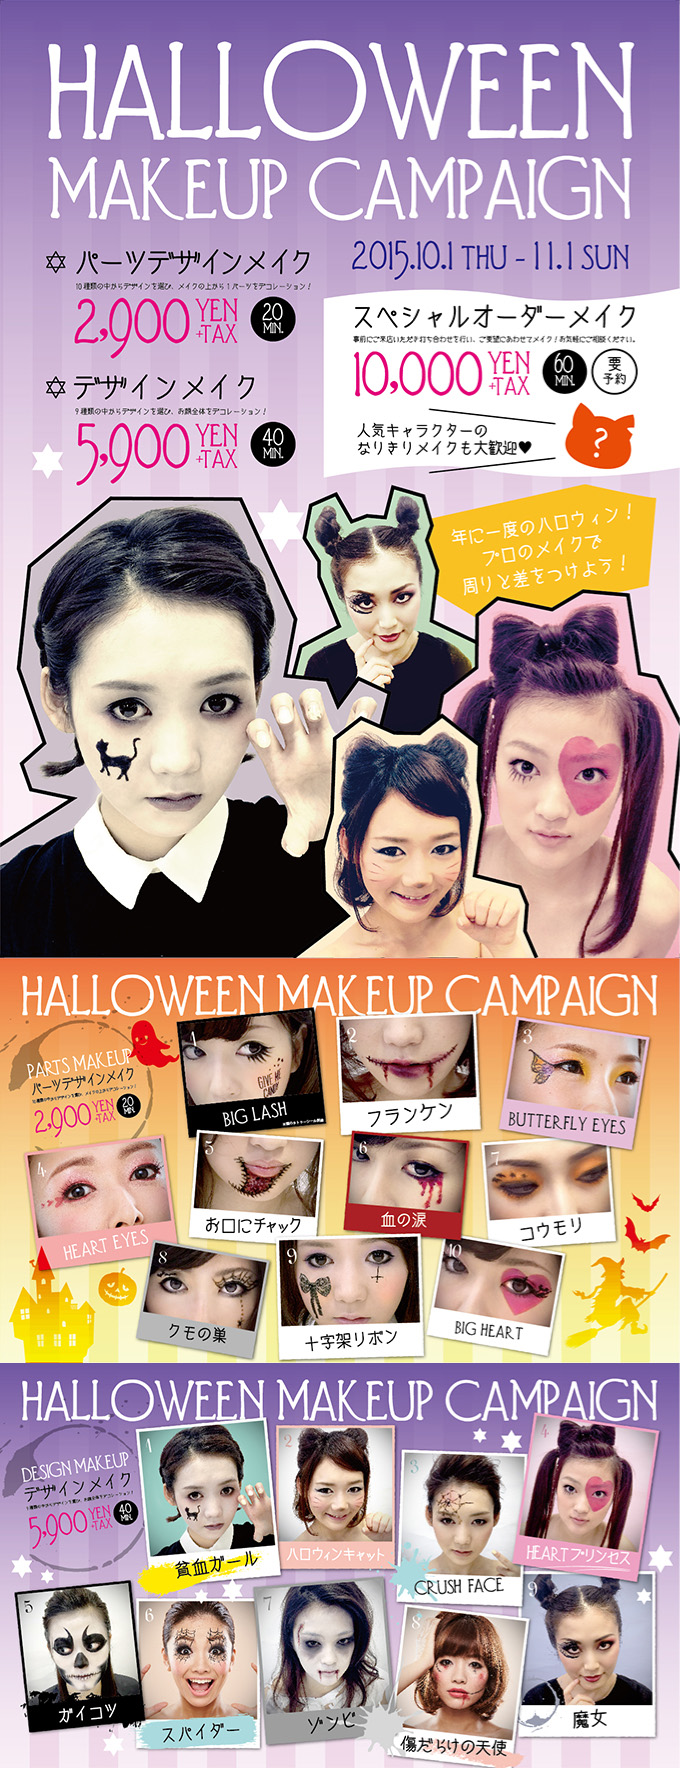 campaign_halloween_2015